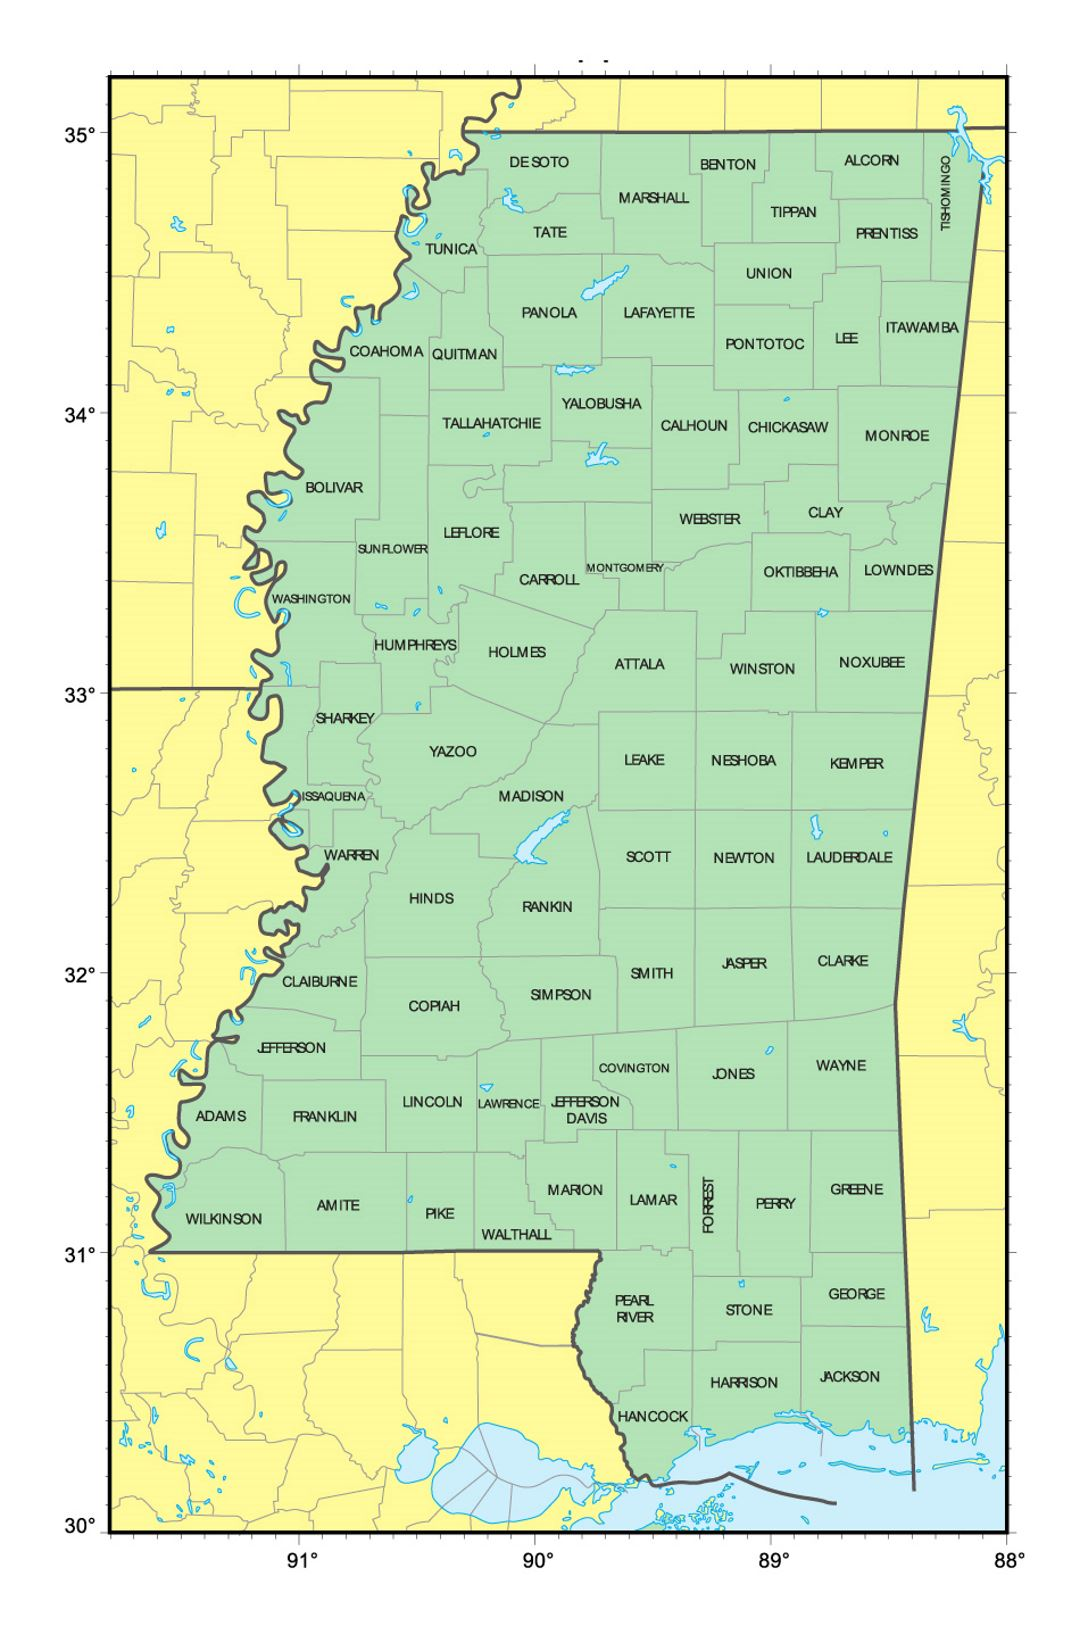 Detailed administrative map of Mississippi state